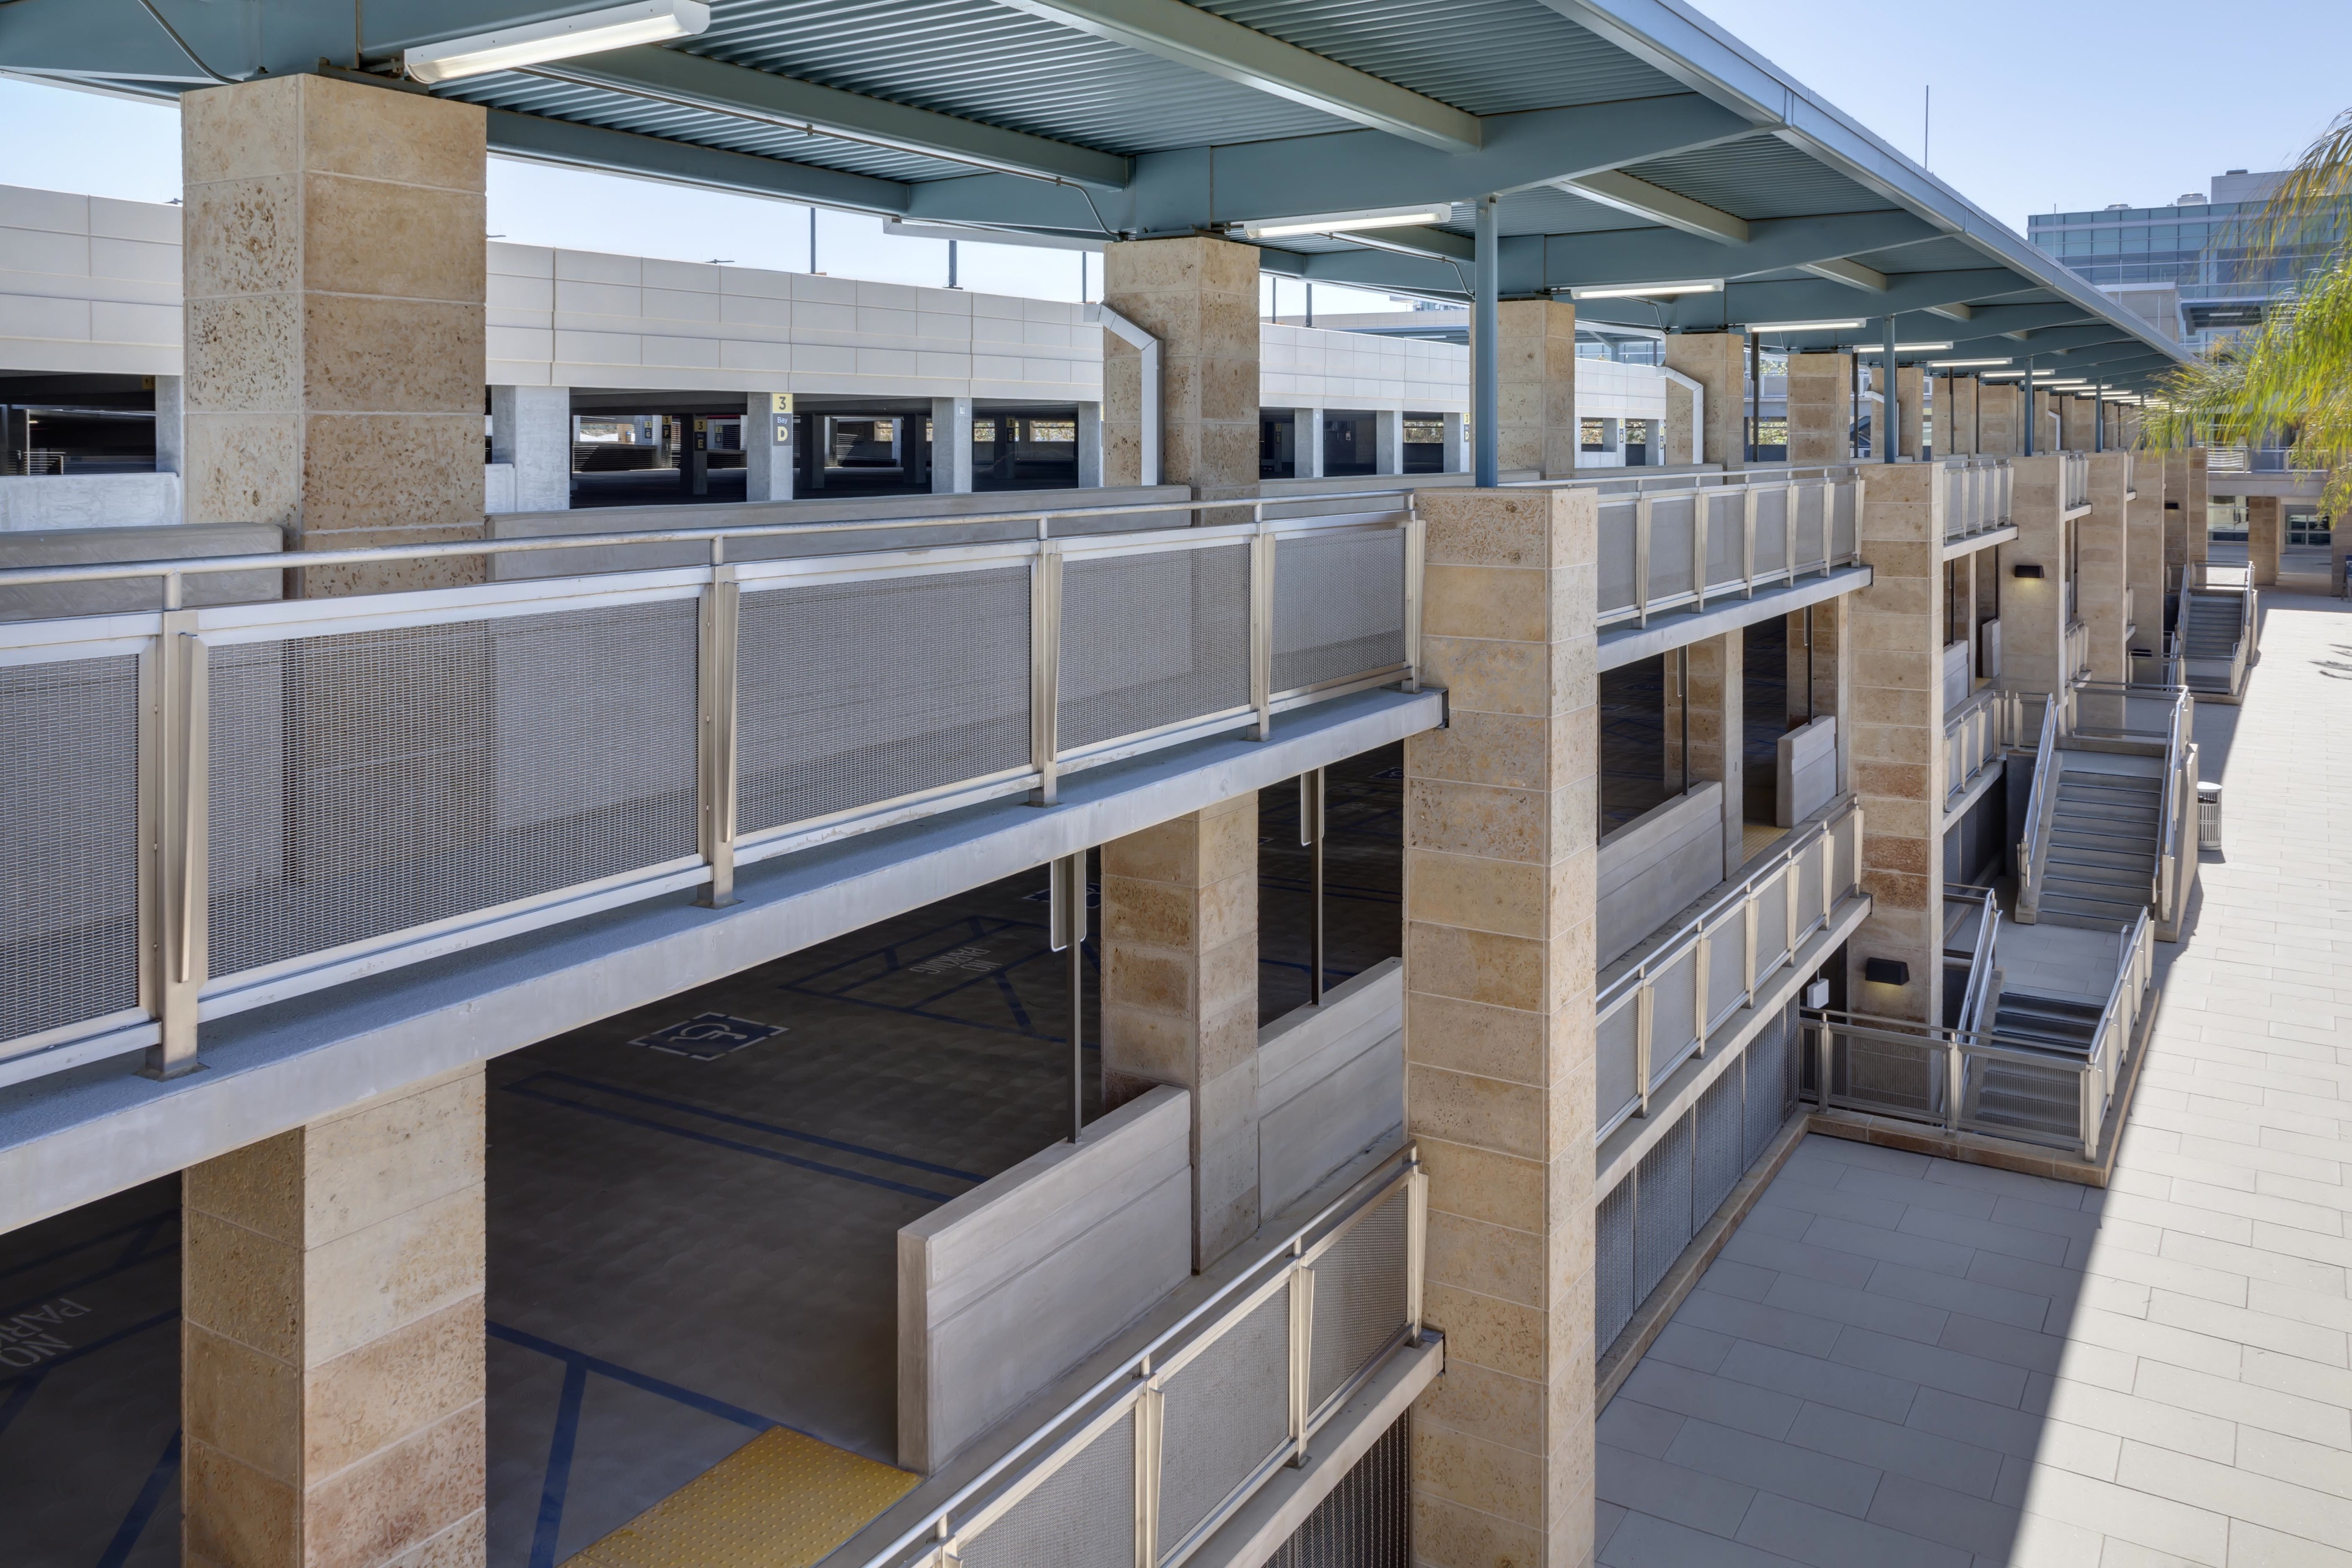 Military Chooses Banker Wire Metal Mesh For Naval Hospital Parking Wiring A Building The Railing Featuring Fpz 10 Woven Provides Sense Of Serenity And Security To Those Entering Leaving